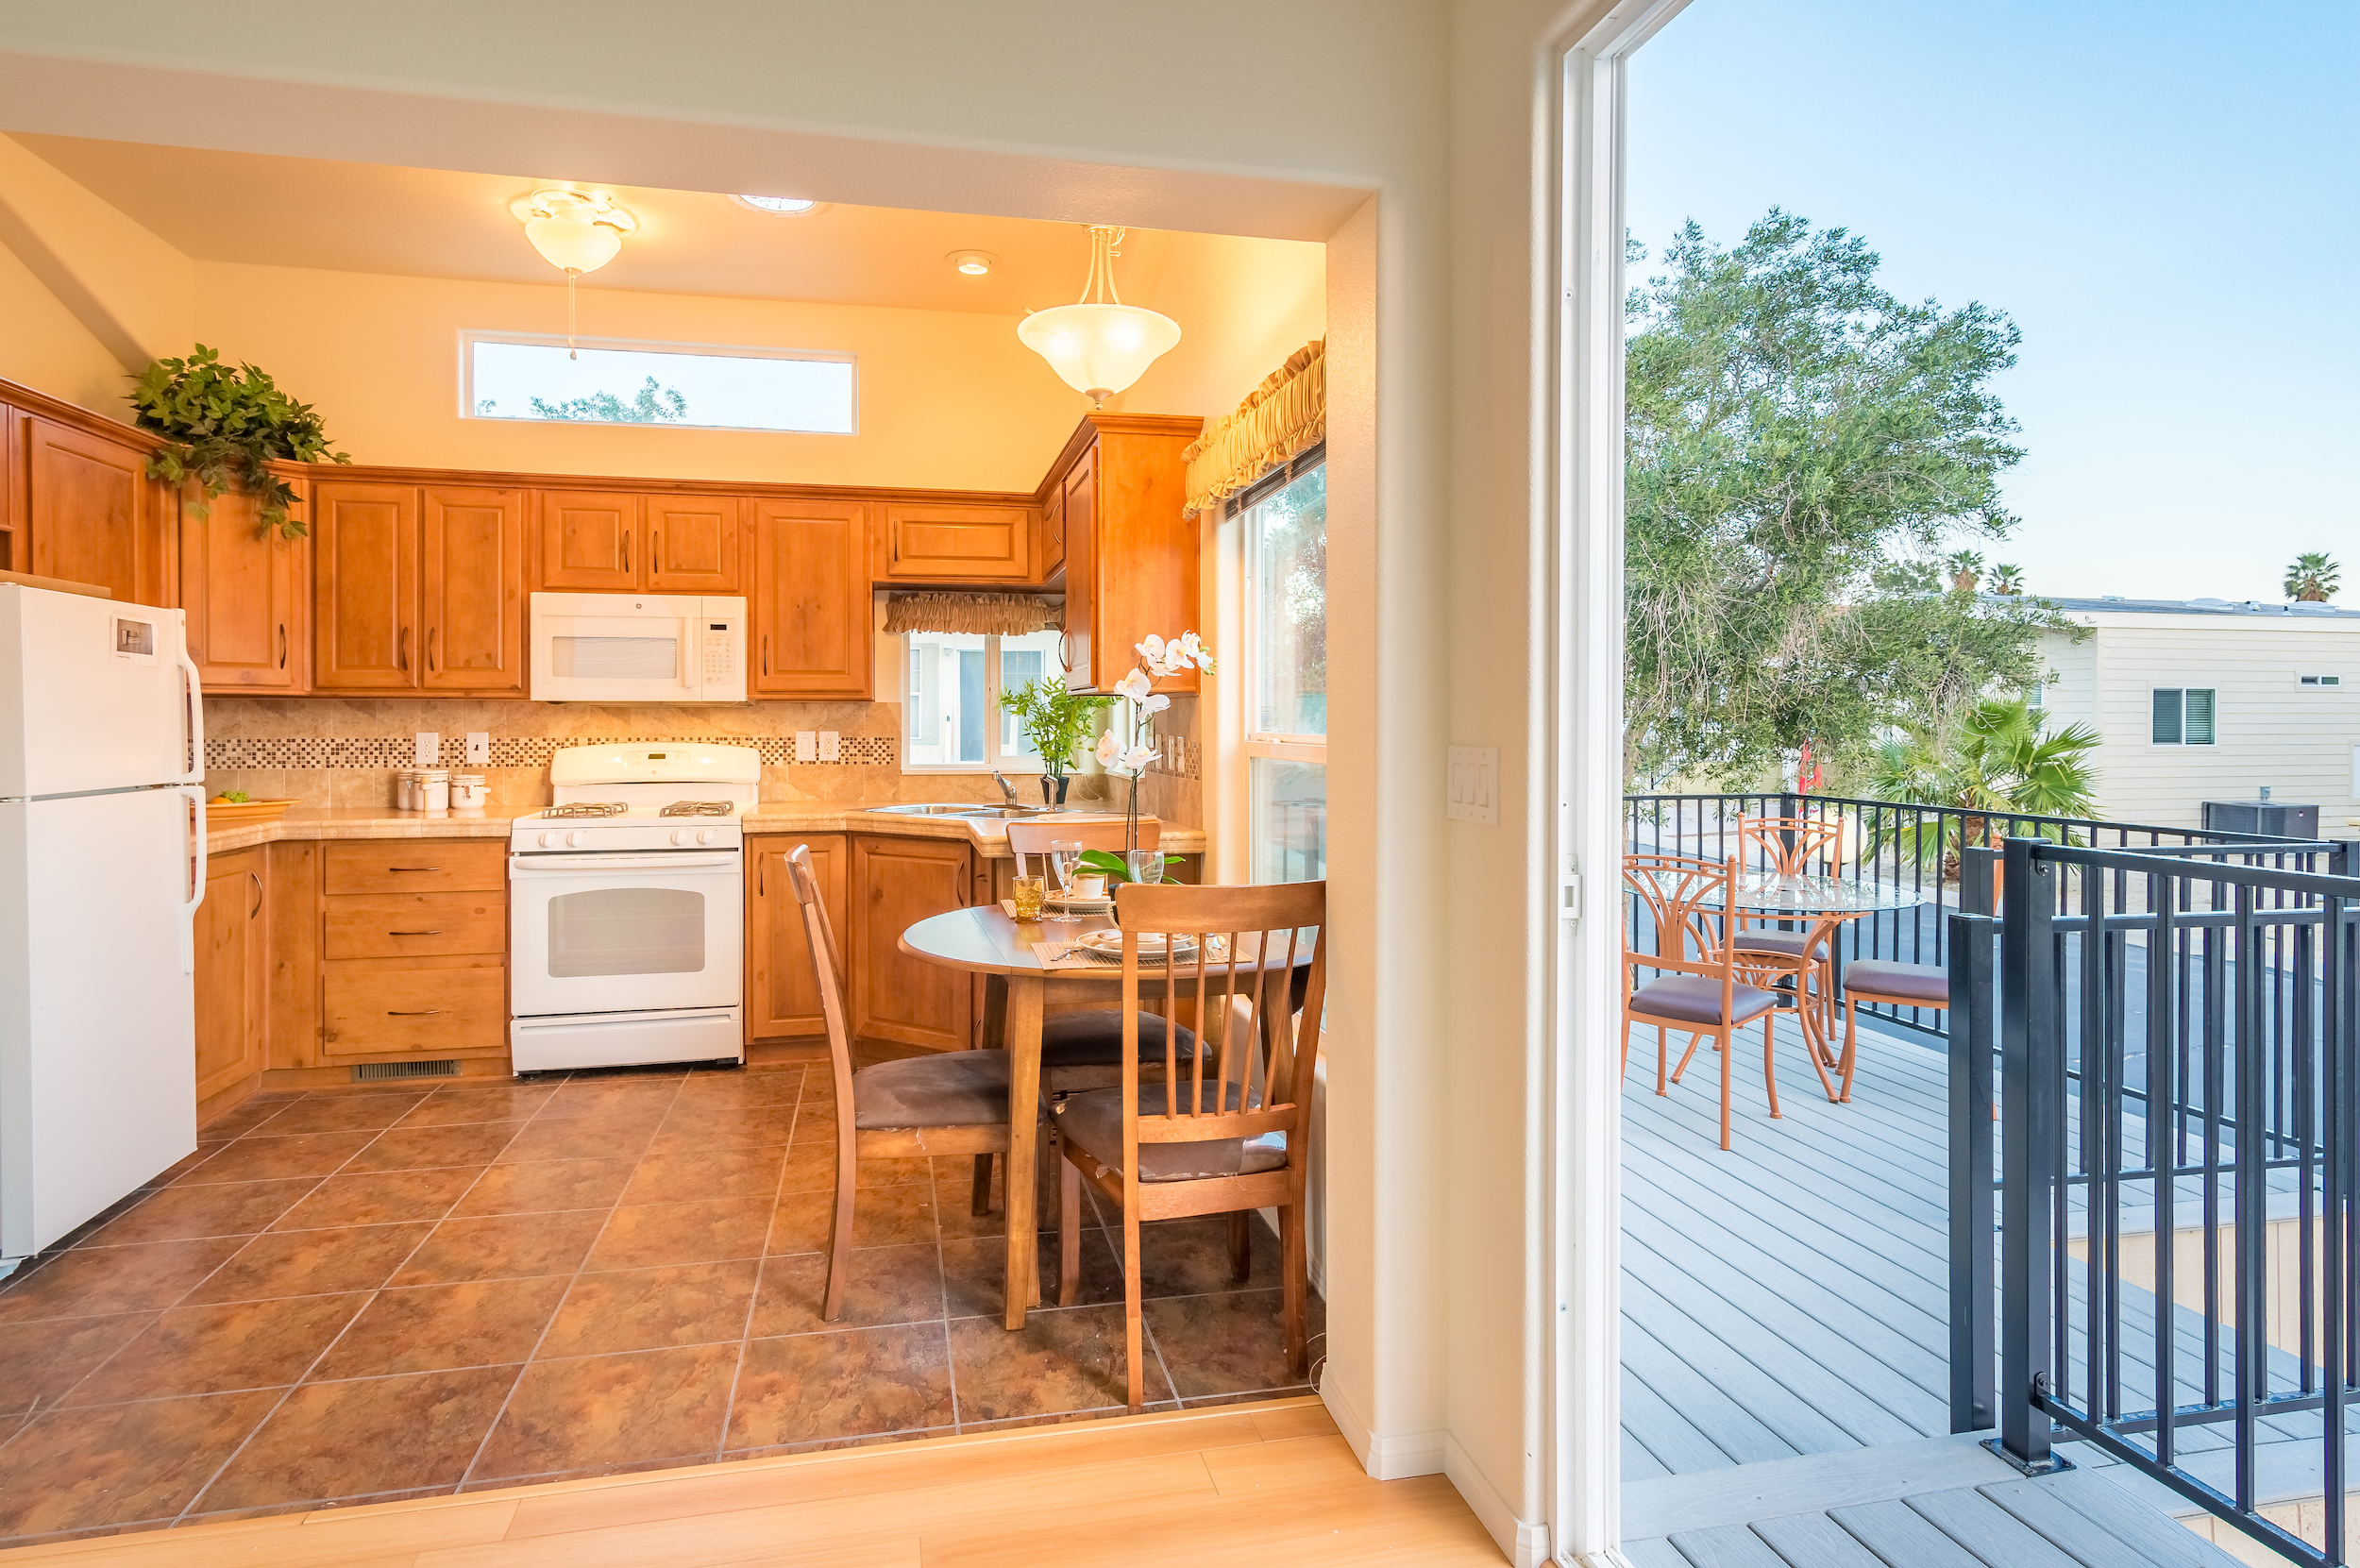 oak-kitchen-with-patio-view.jpg